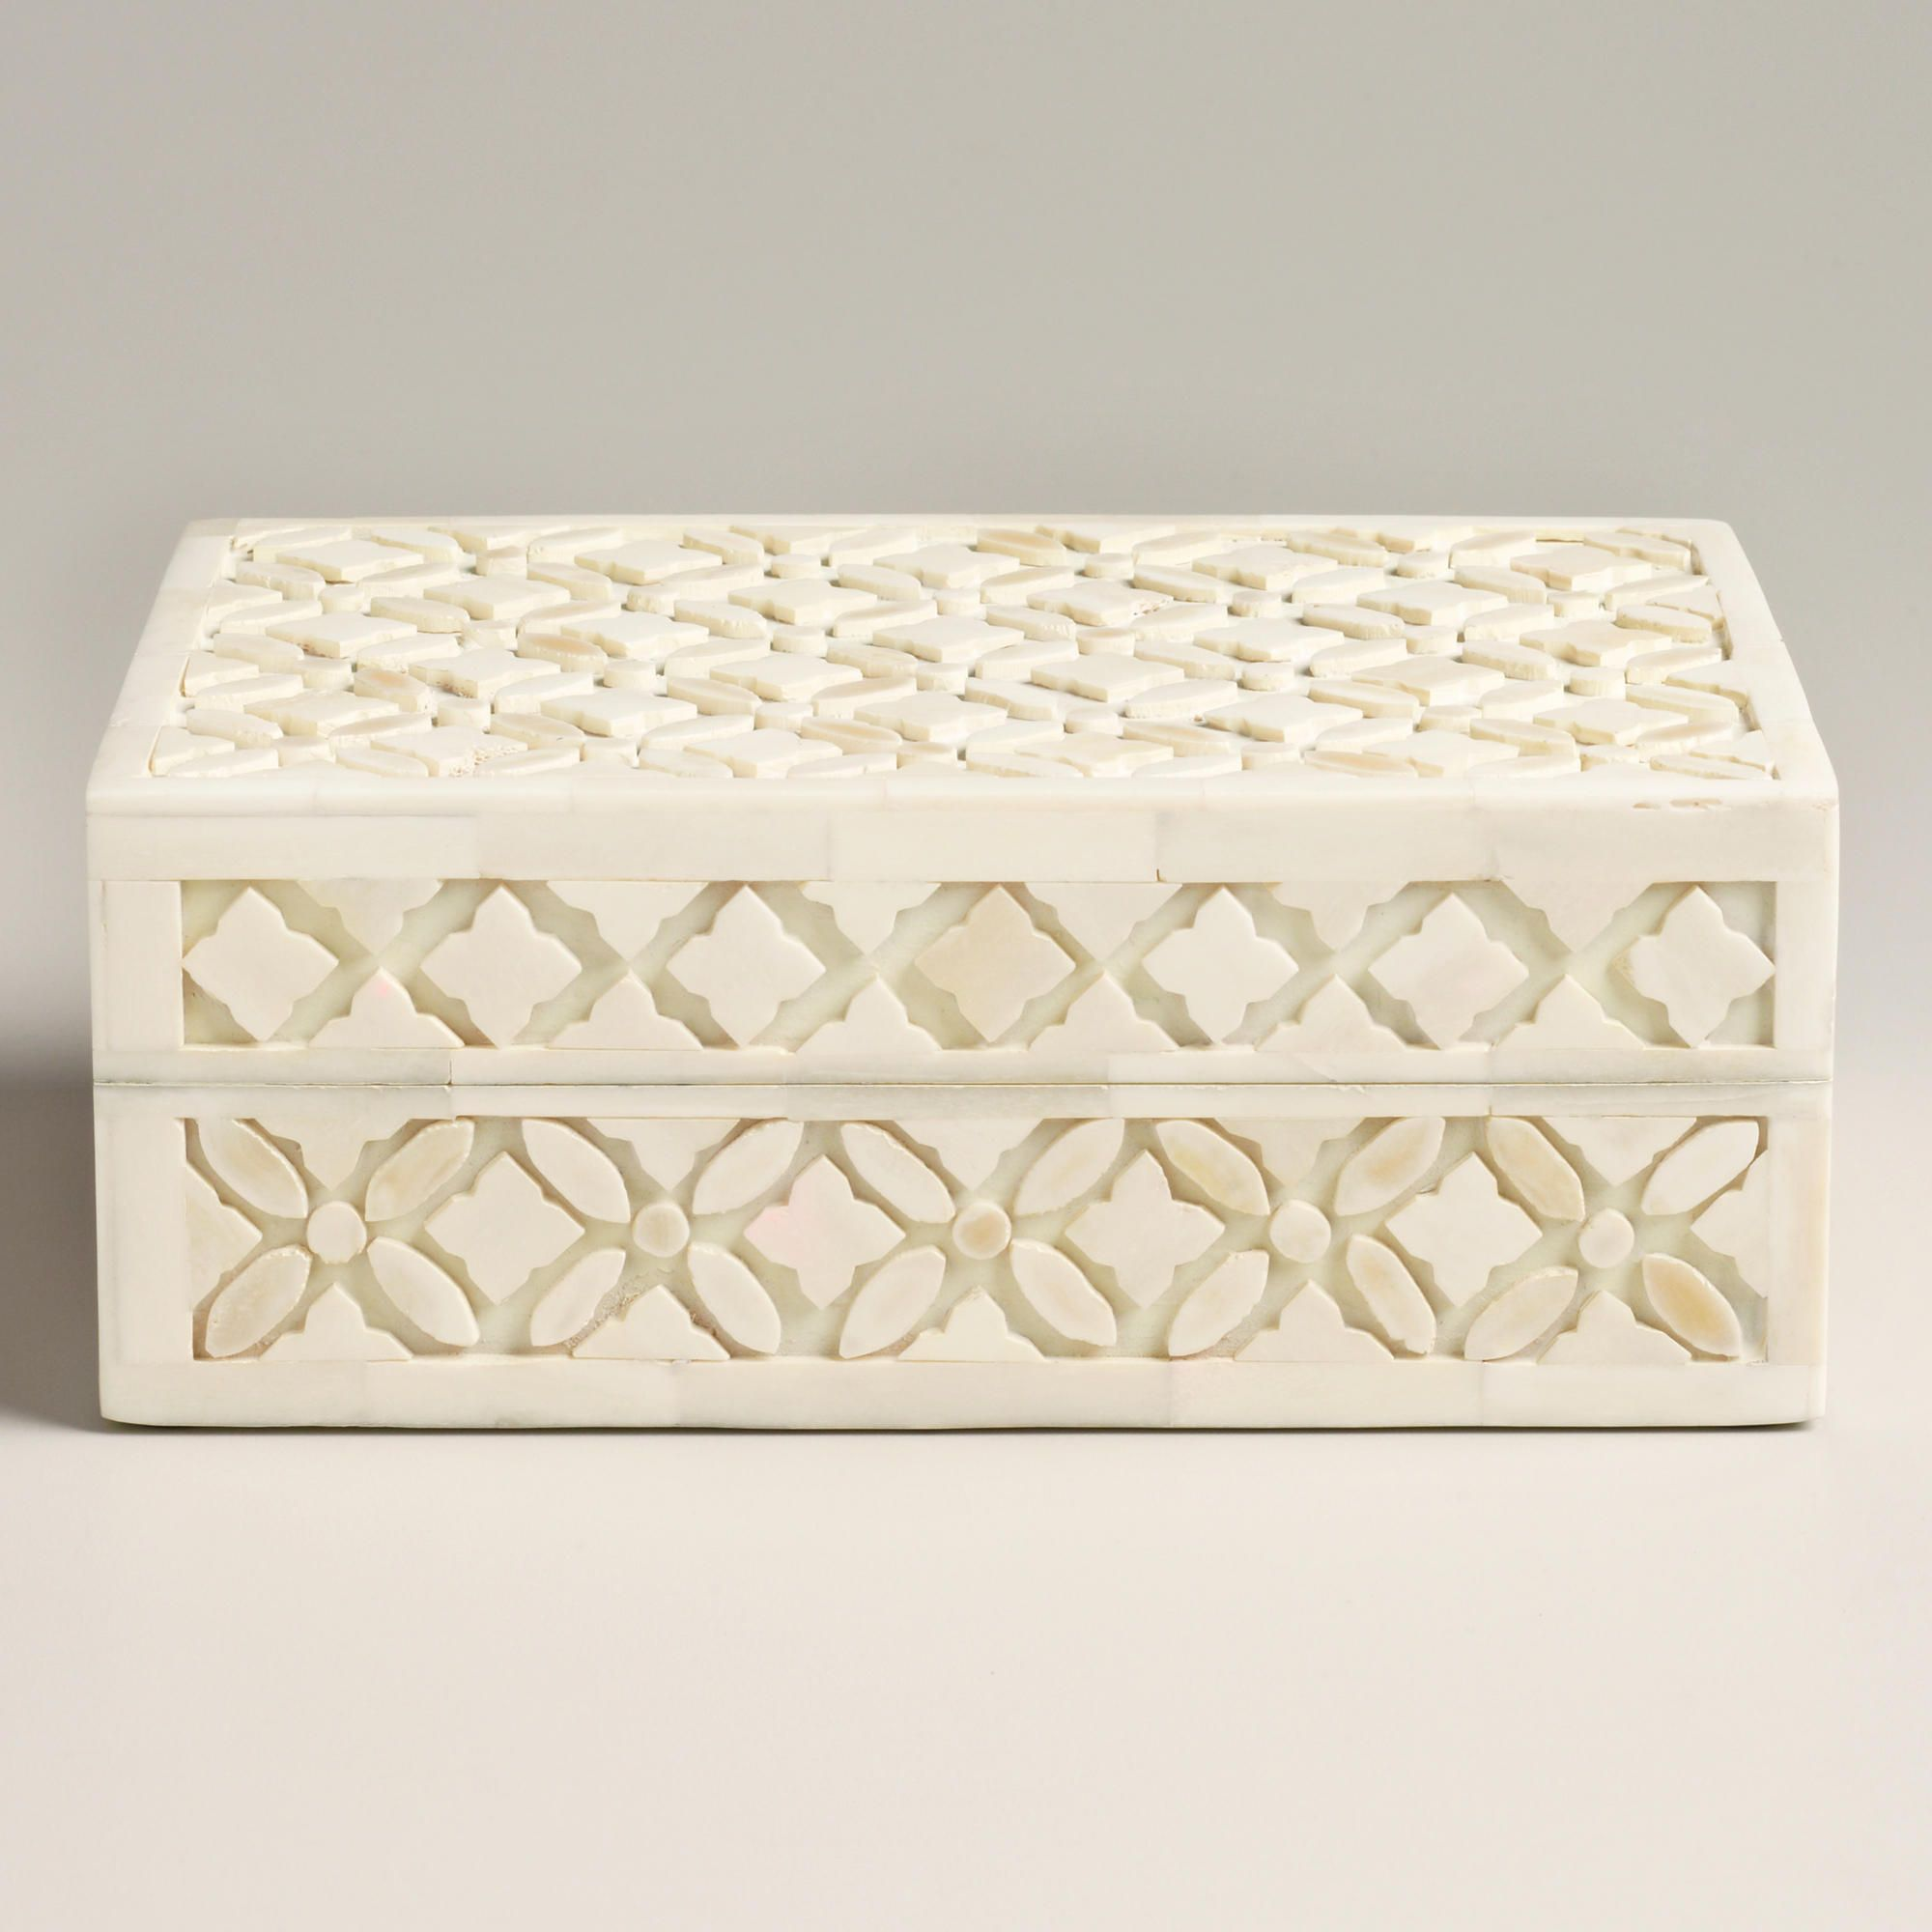 World Market Jewelry Box Unique Ivory Bone Aiden Jewelry Box  World Market  For The Home  Pinterest Design Inspiration